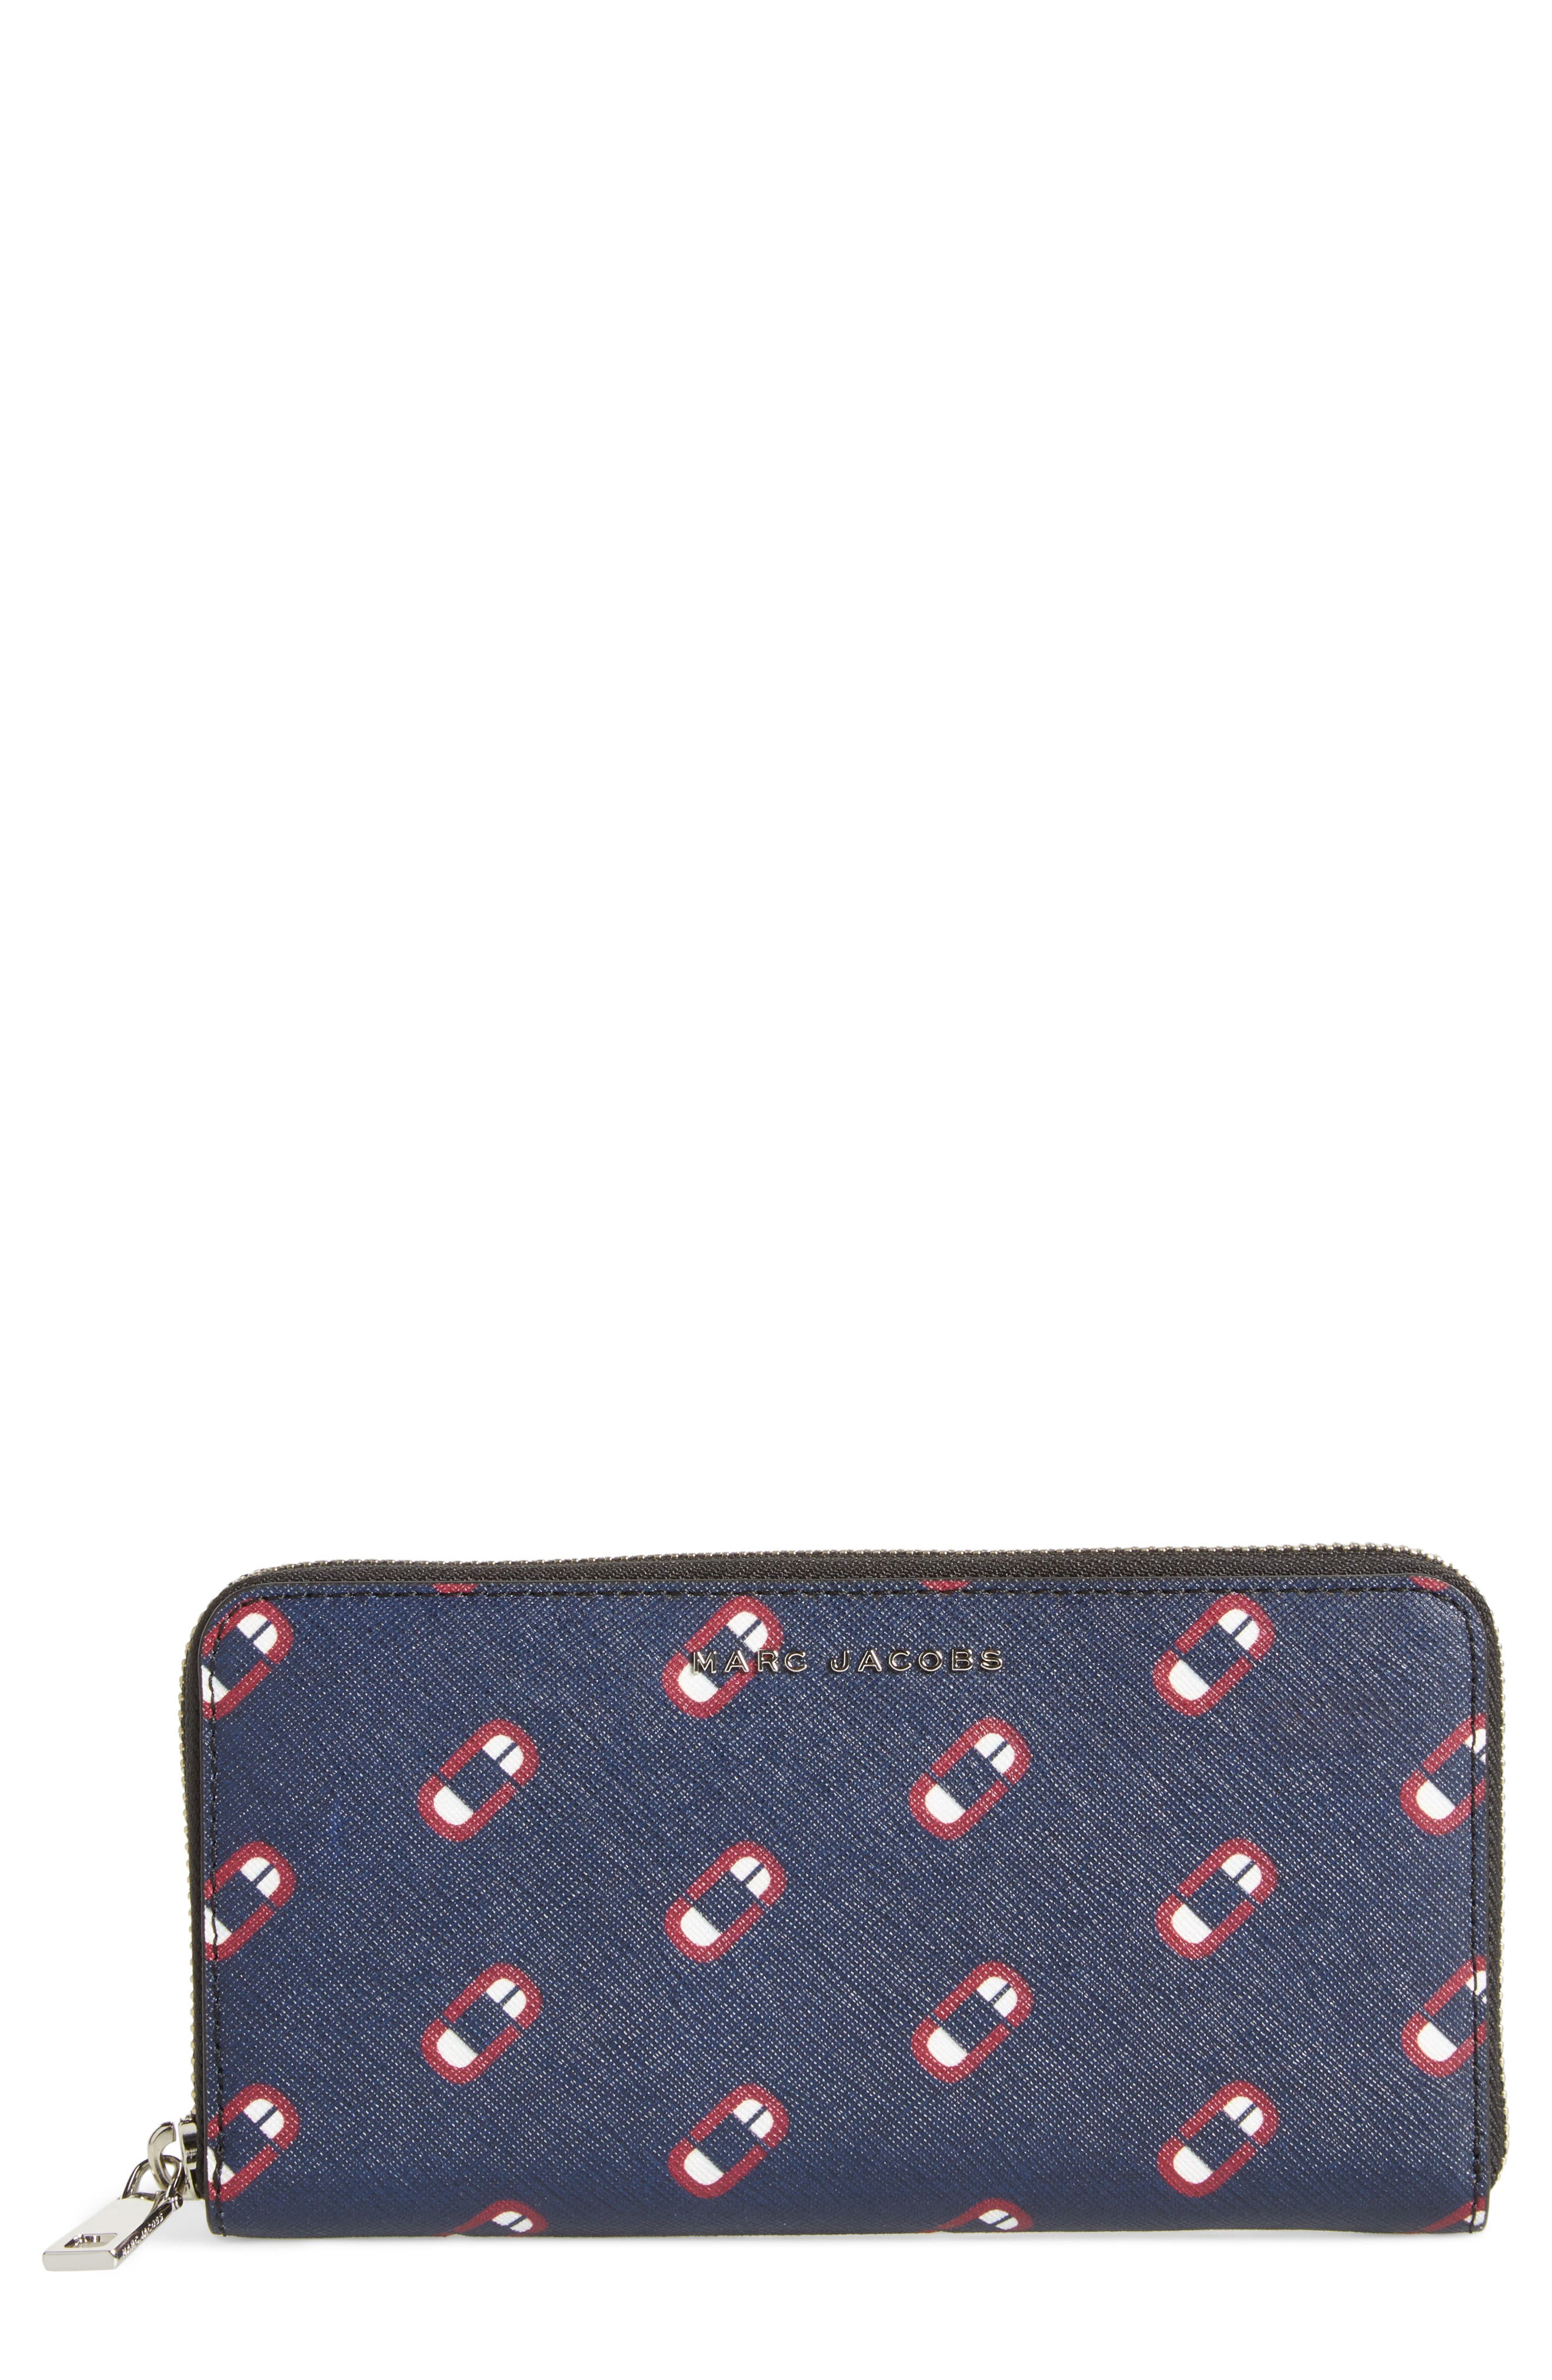 Scream Saffiano Leather Continental Wallet,                             Main thumbnail 1, color,                             Navy Multi